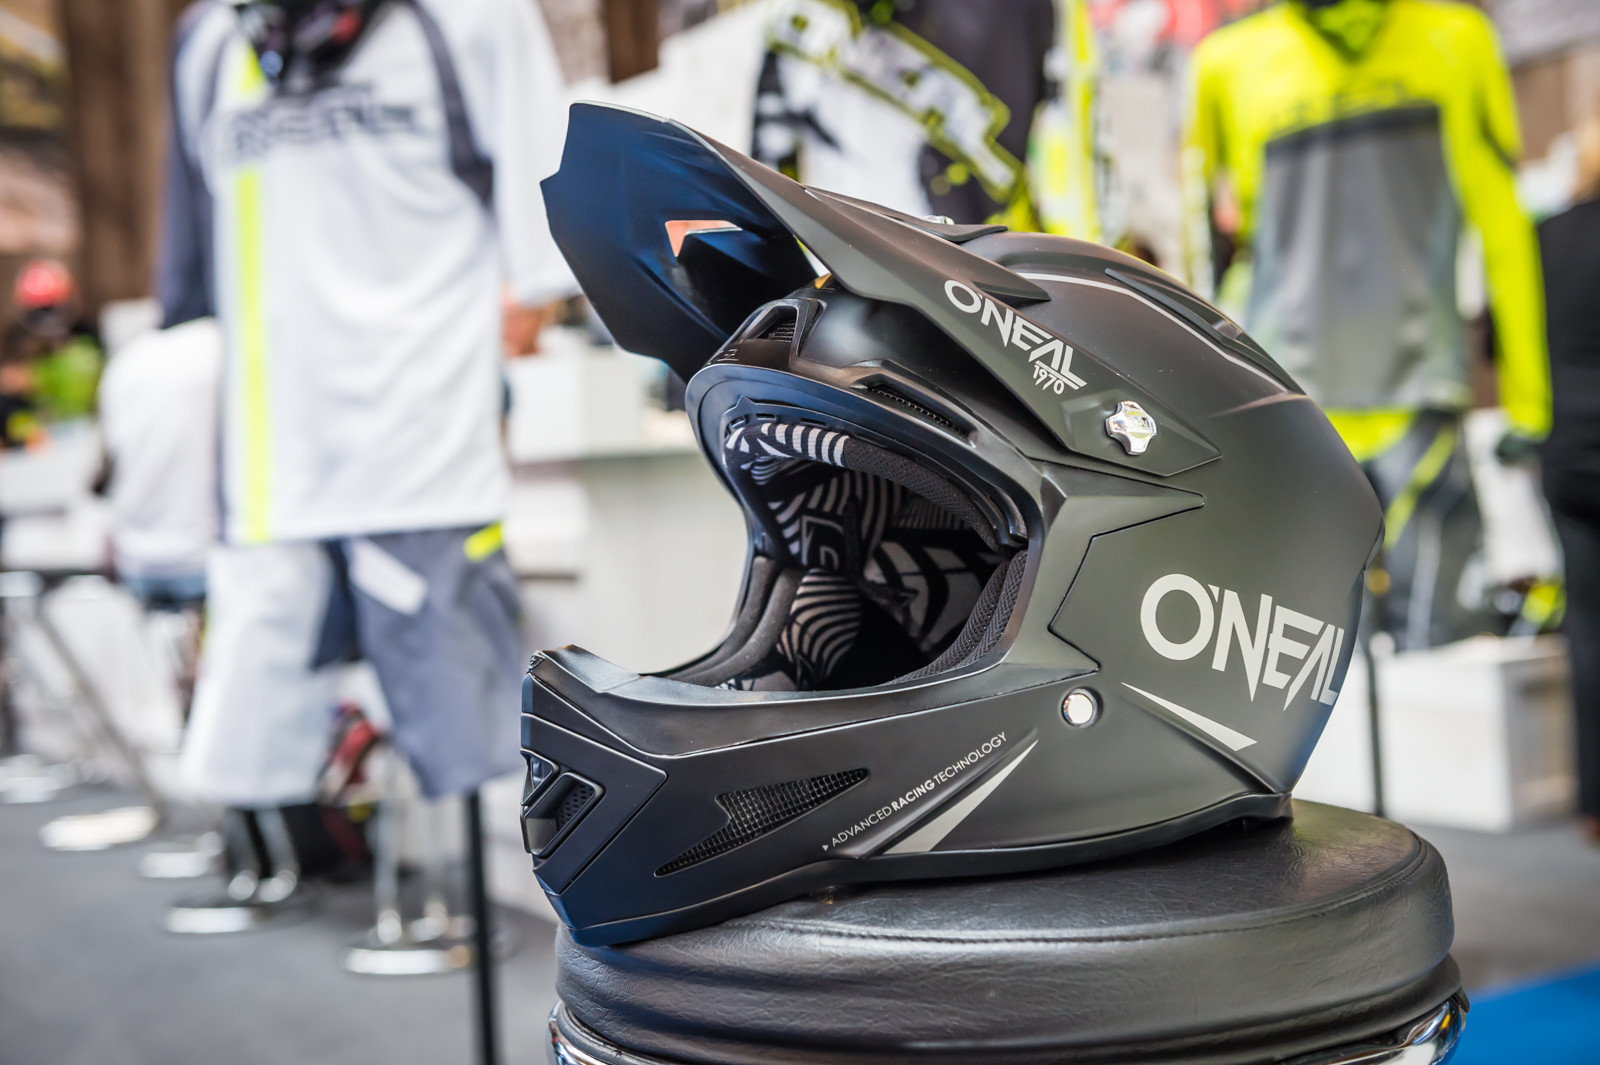 2016 O'Neal Warp, Fury Helmets and AMX Pads - 2016 Mountain Bike Apparel & Protection at Eurobike - Mountain Biking Pictures - Vital MTB